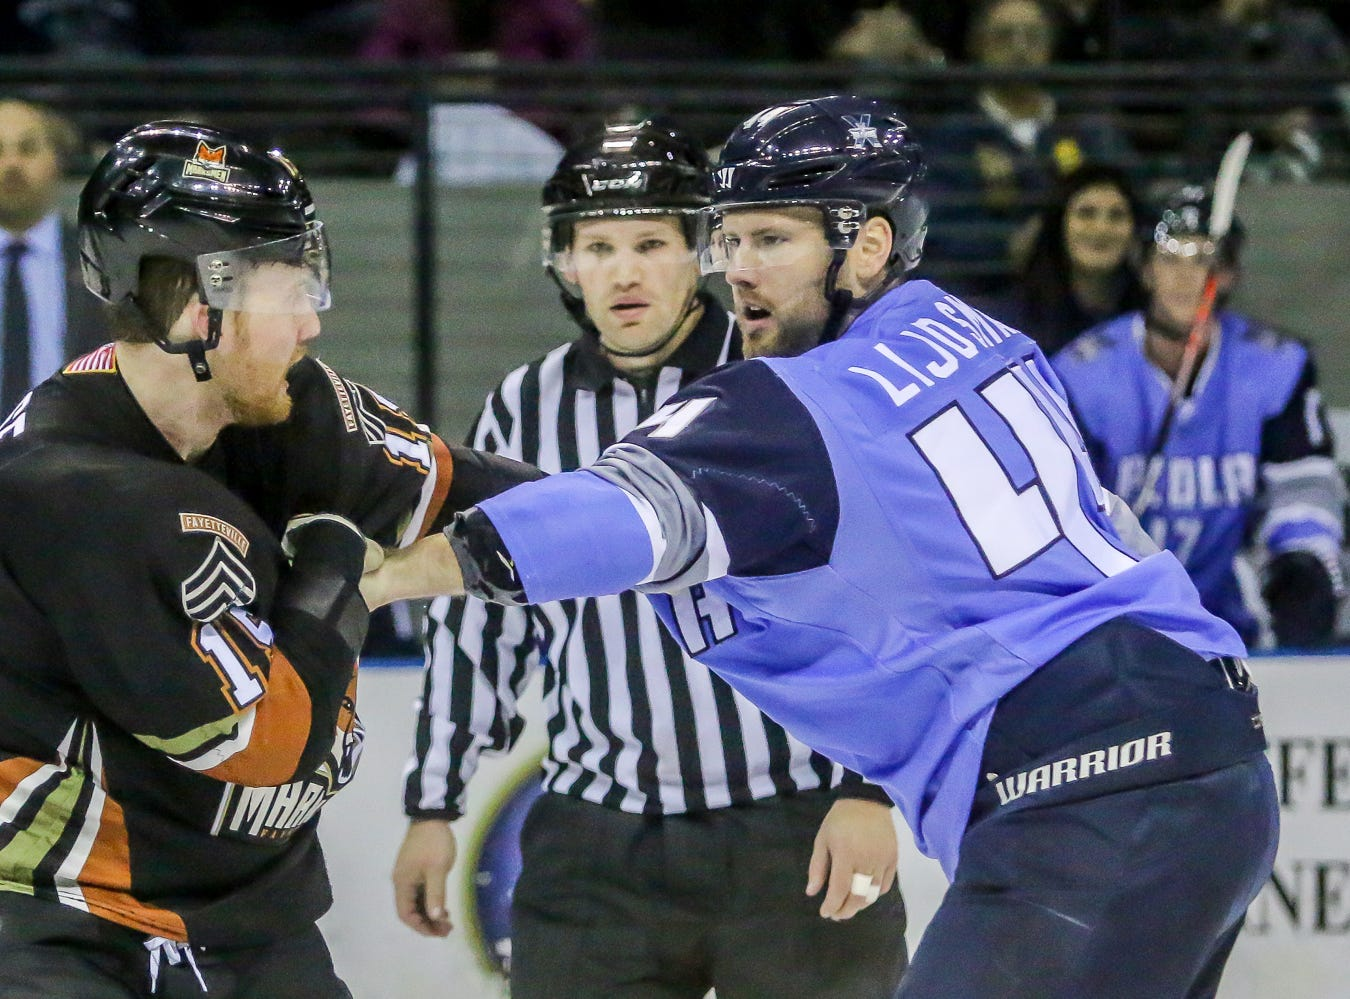 Pensacola's Chris Lijdsman (44) and Fayetteville's Taylor Pryce (15) punch it out during the third period of the game at the Pensacola Bay Center on Saturday, January 5, 2019.